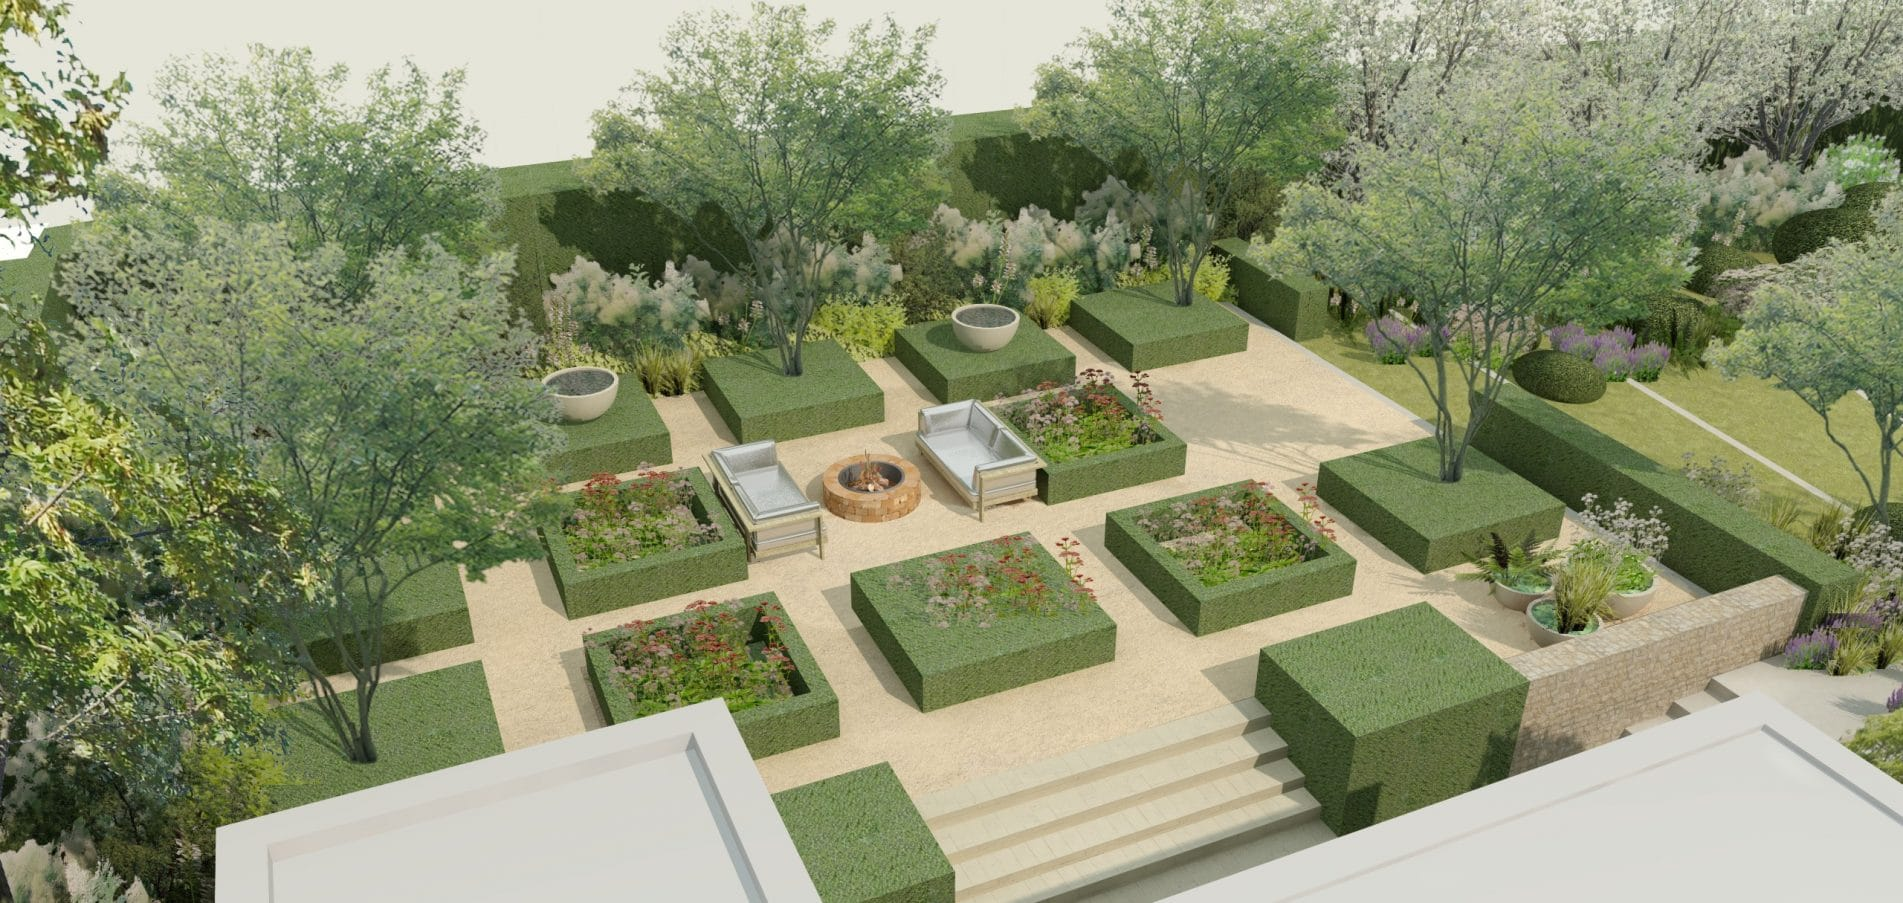 Planning Permission For House In Garden 28 Images Do I